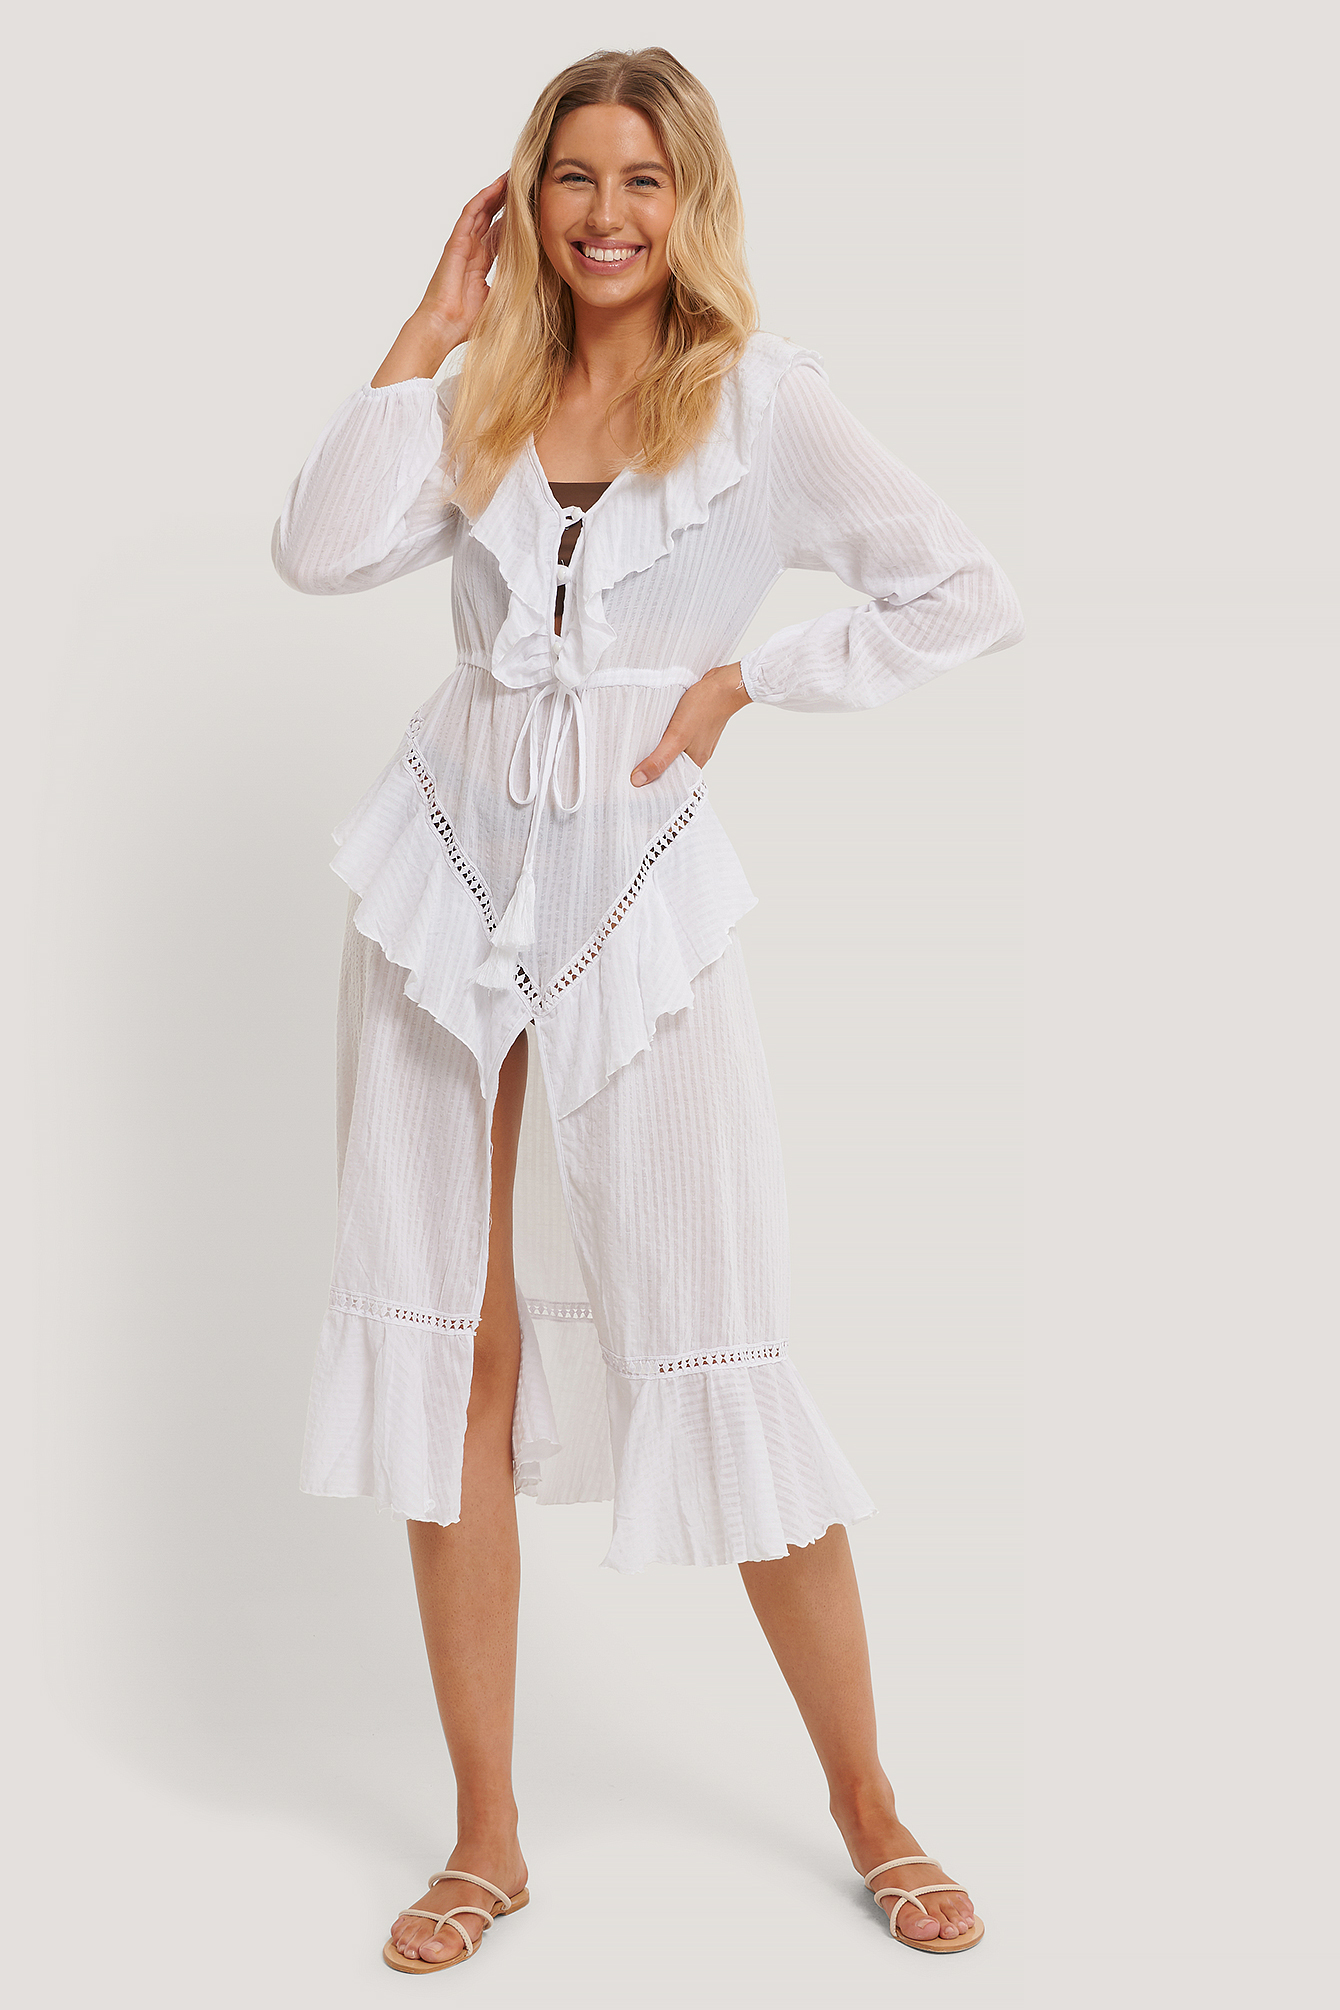 White Lacing Detail Voile Beach Dress